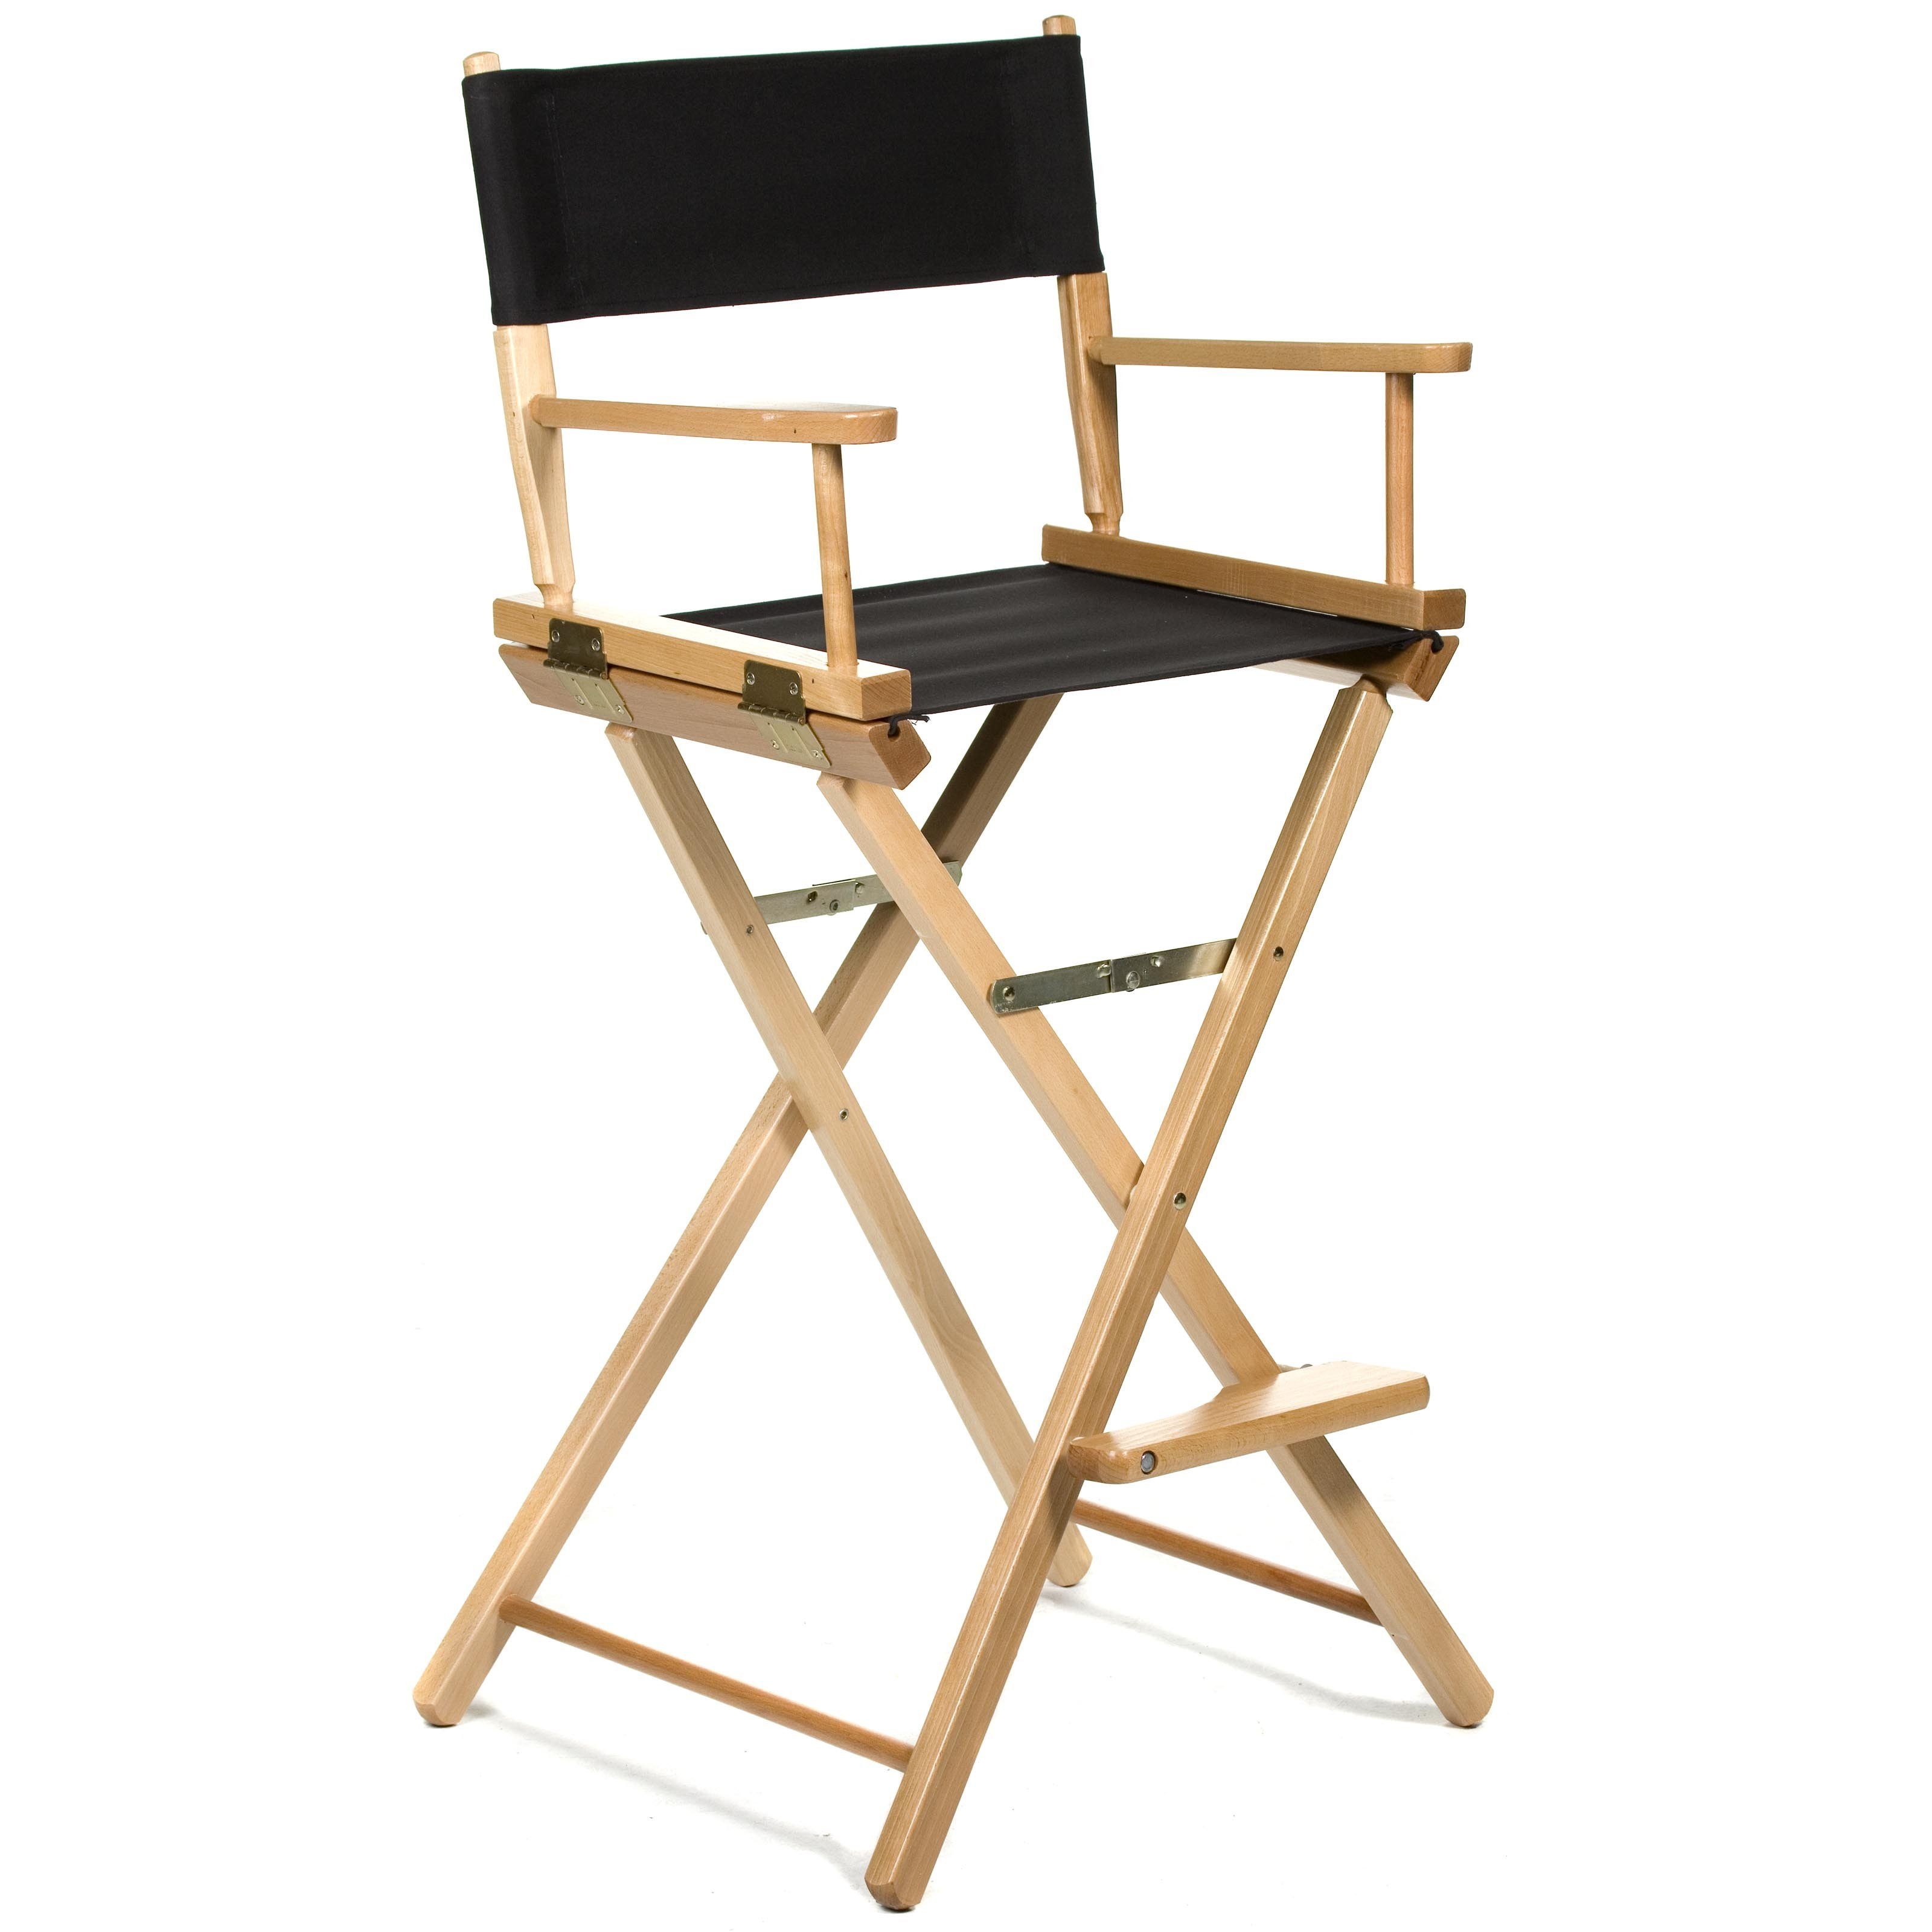 Amazing White Samsonite Folding Chair Onthecornerstone Fun Painted Chair Ideas Images Onthecornerstoneorg